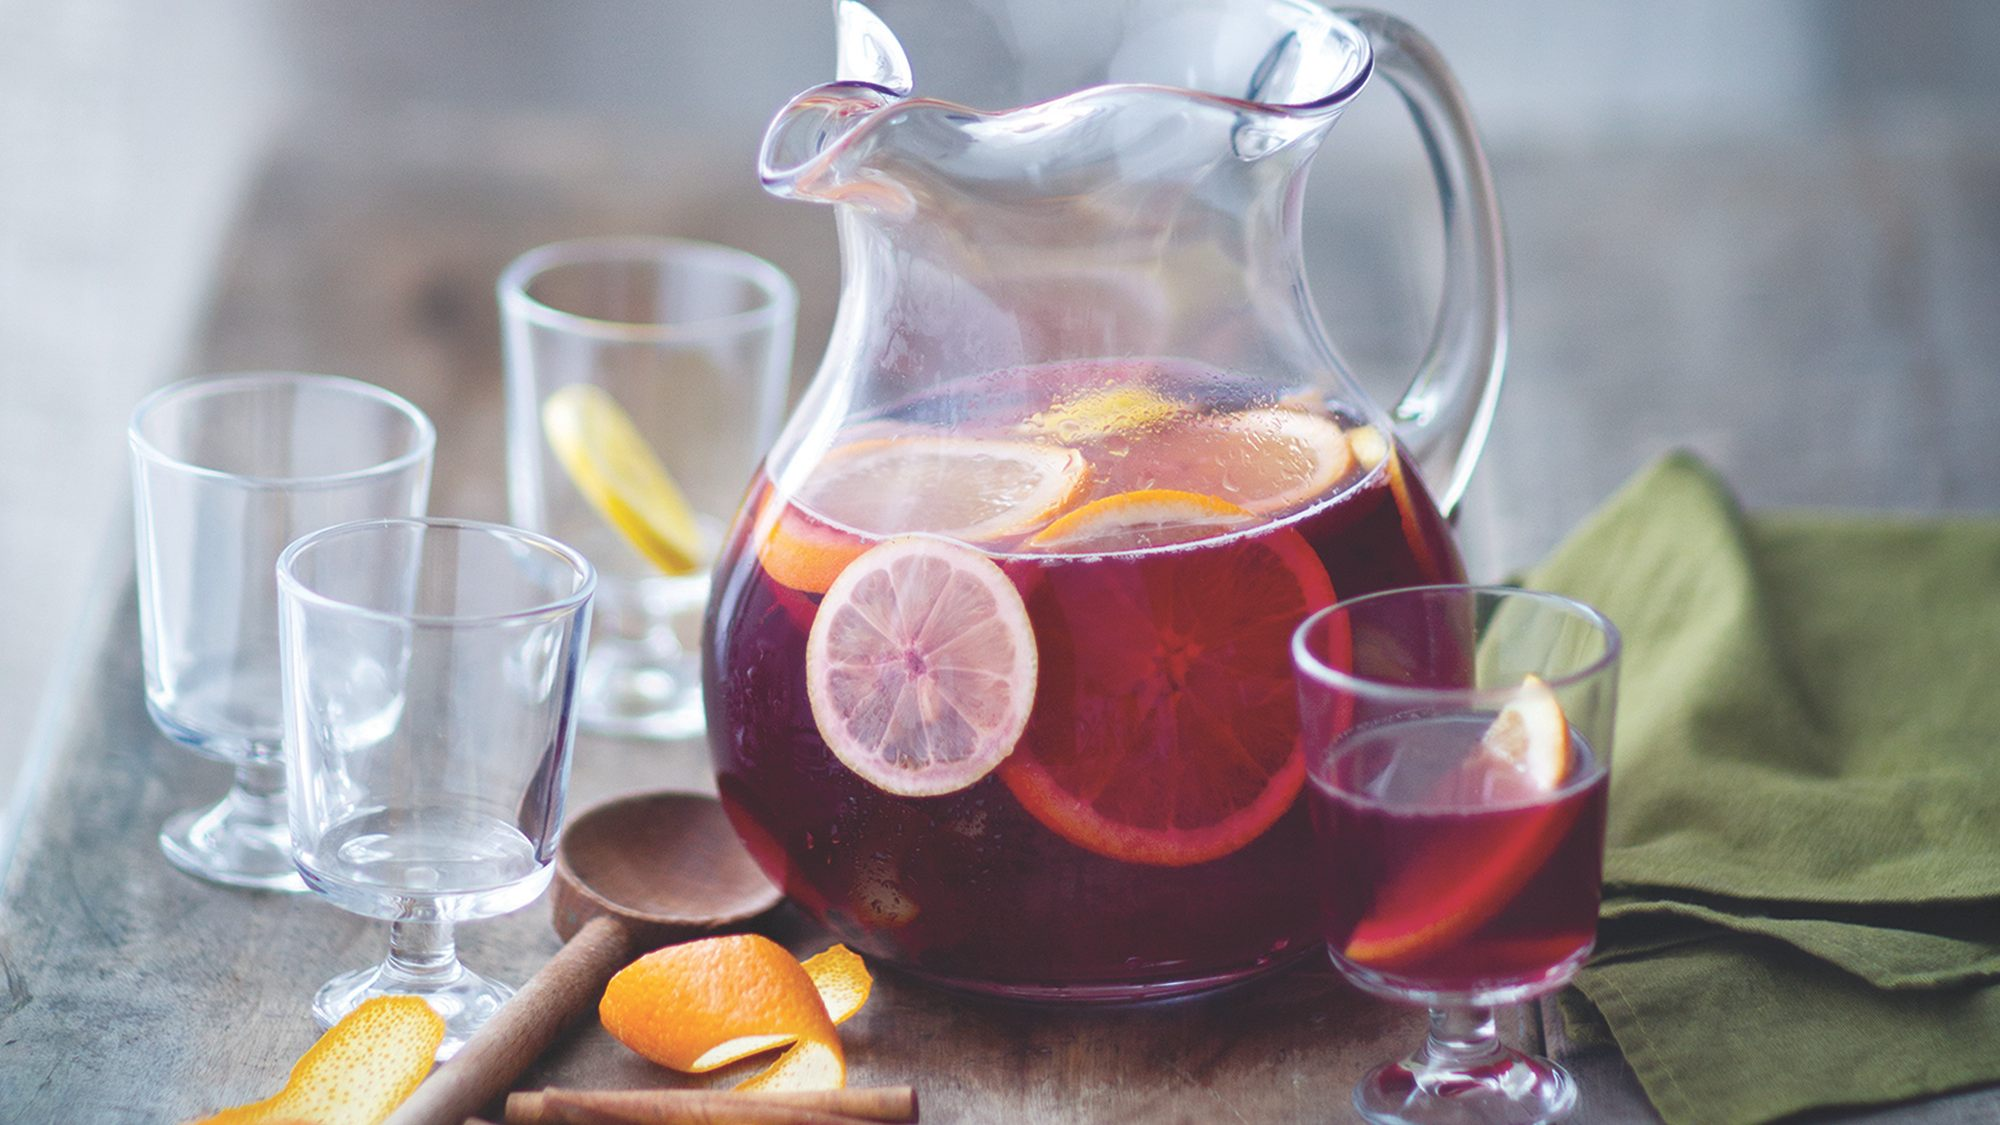 McCormick Spiced Sangria